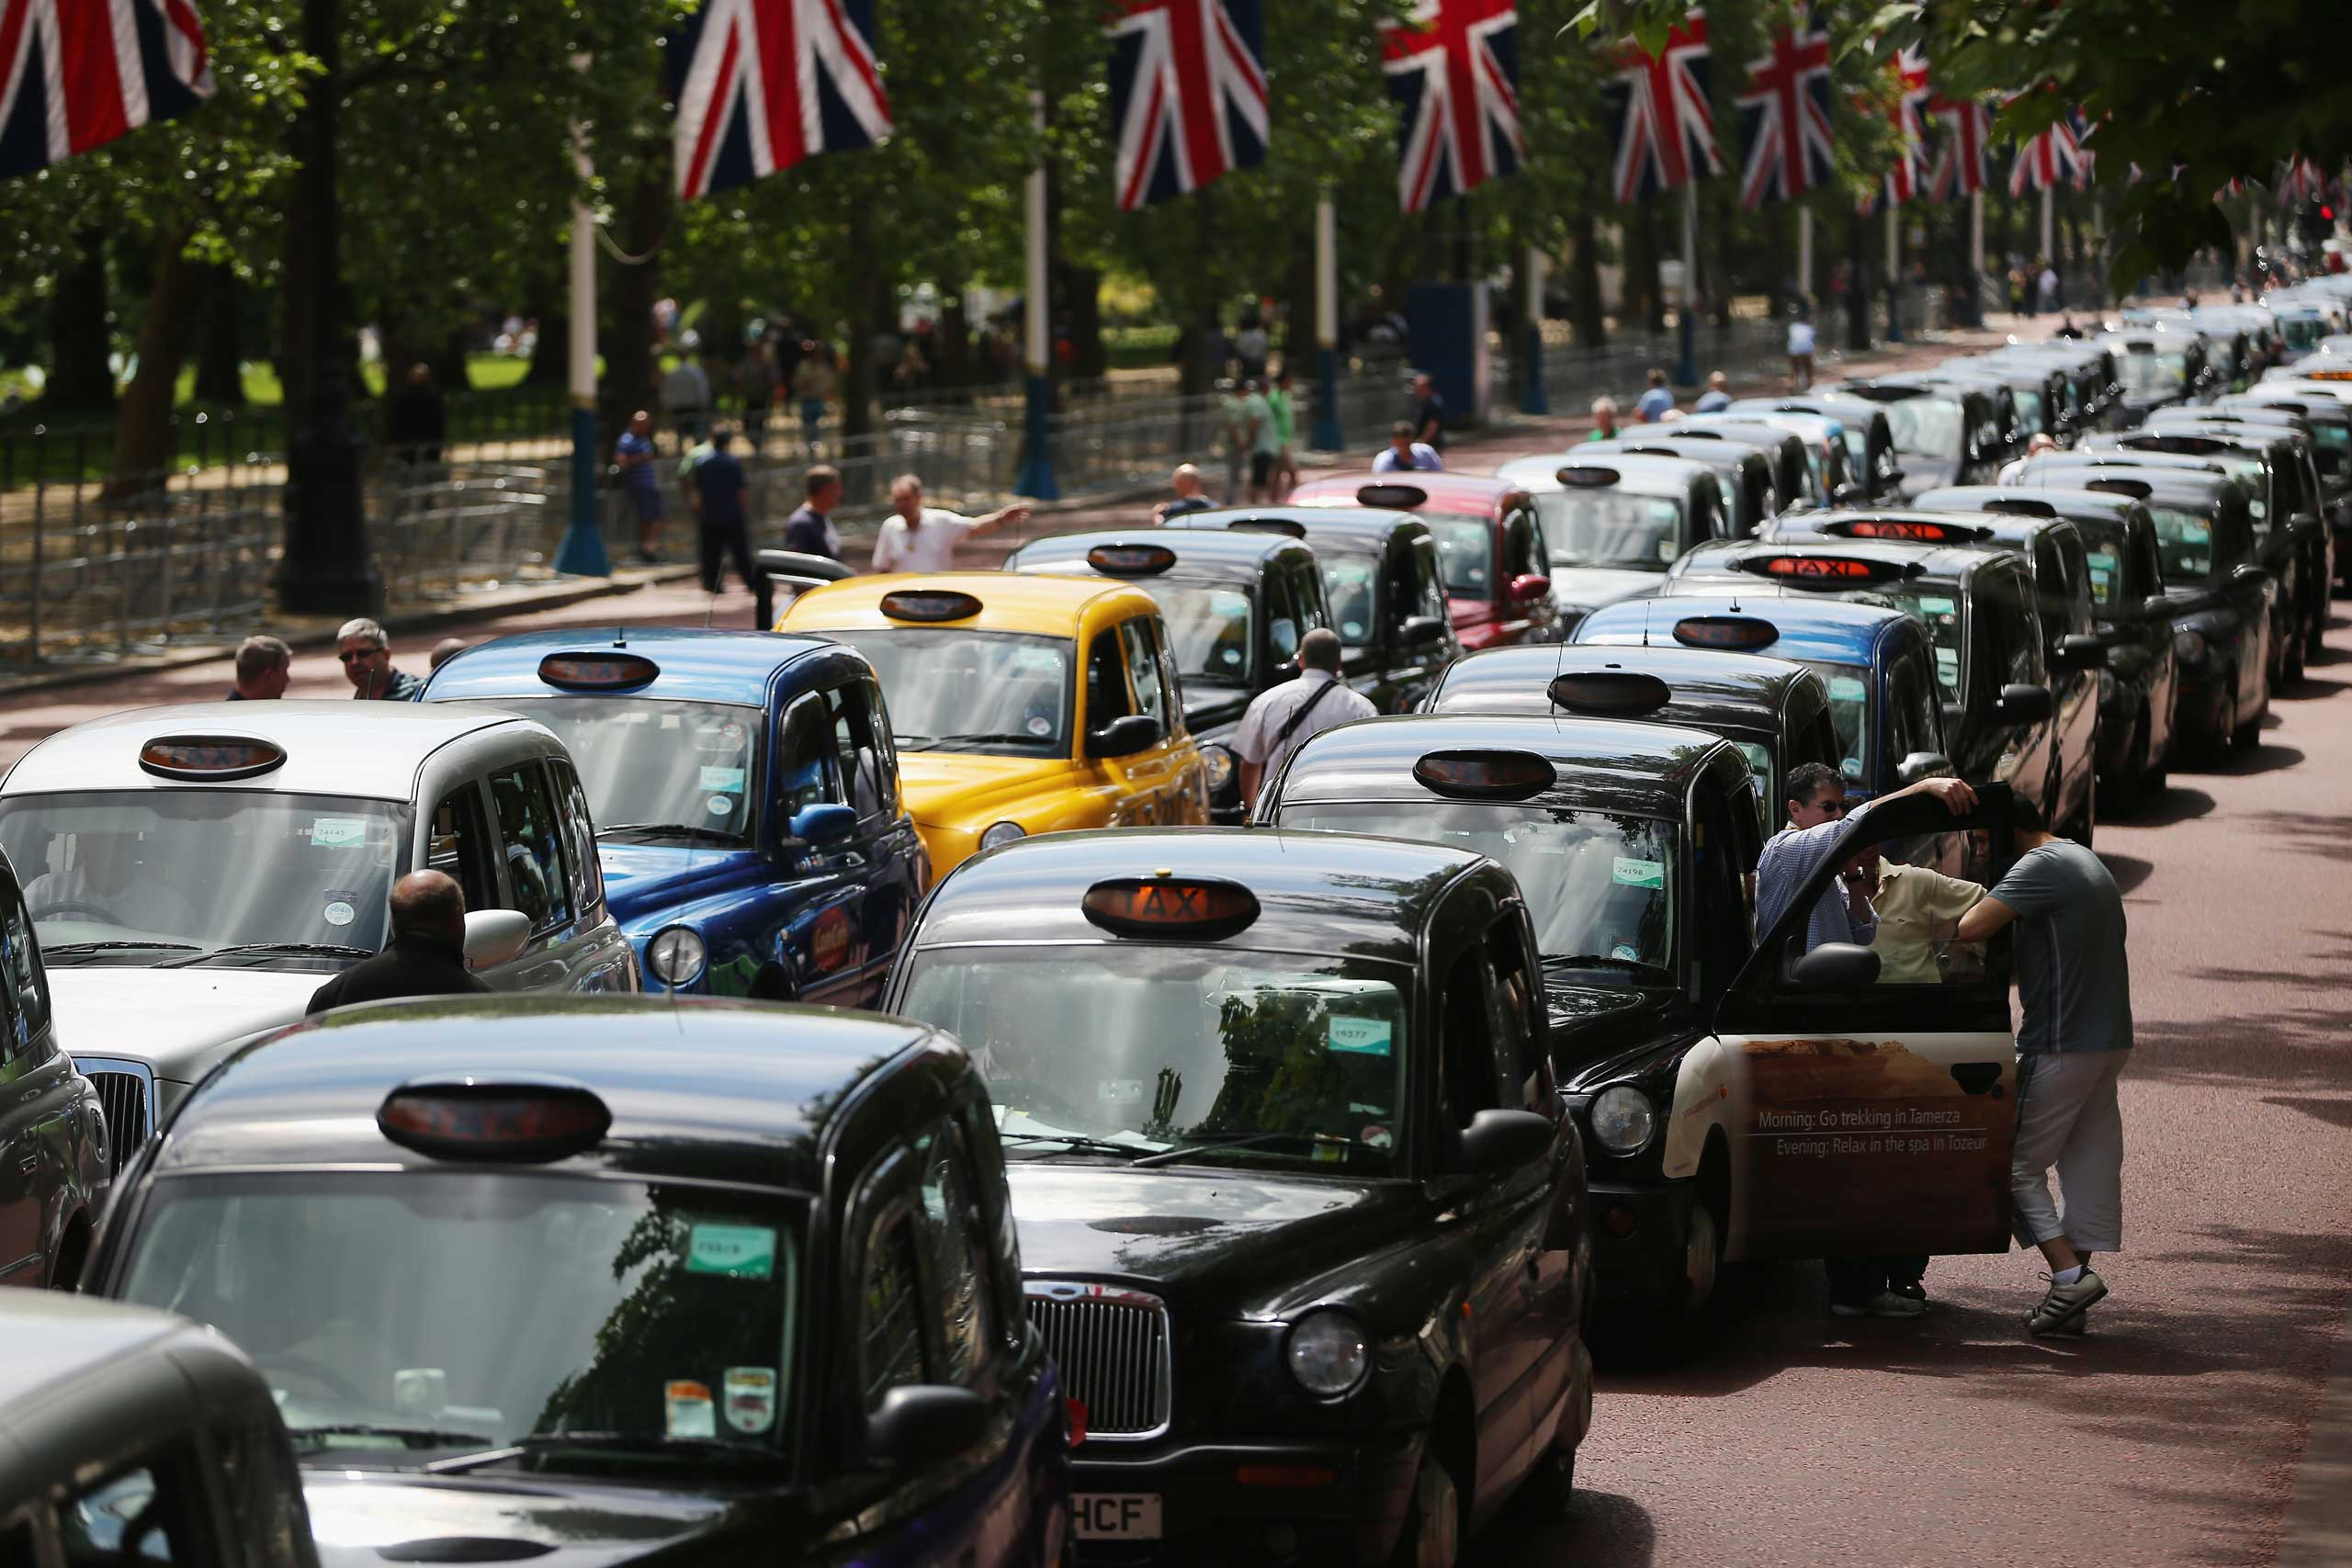 London taxi's line up on The Mall during a protest against a new smart phone app, 'Uber' on June 11, 2014 in London.